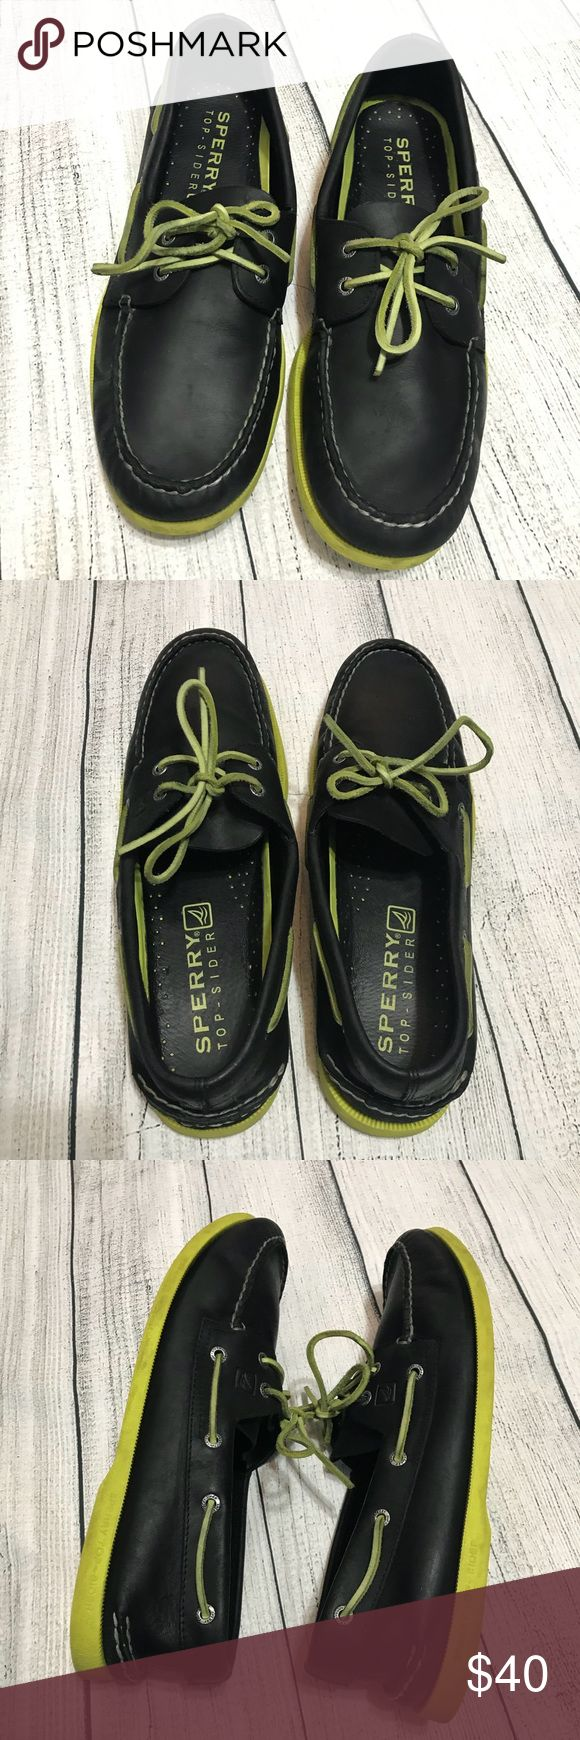 Sperry Top-Sider Slip On Men's Shoes Size 13 Sperry Top-Sider Slip On Men's Shoes Size 13 Good condition; no damage;  F19 Sperry Top-Sider Shoes Loafers & Slip-Ons